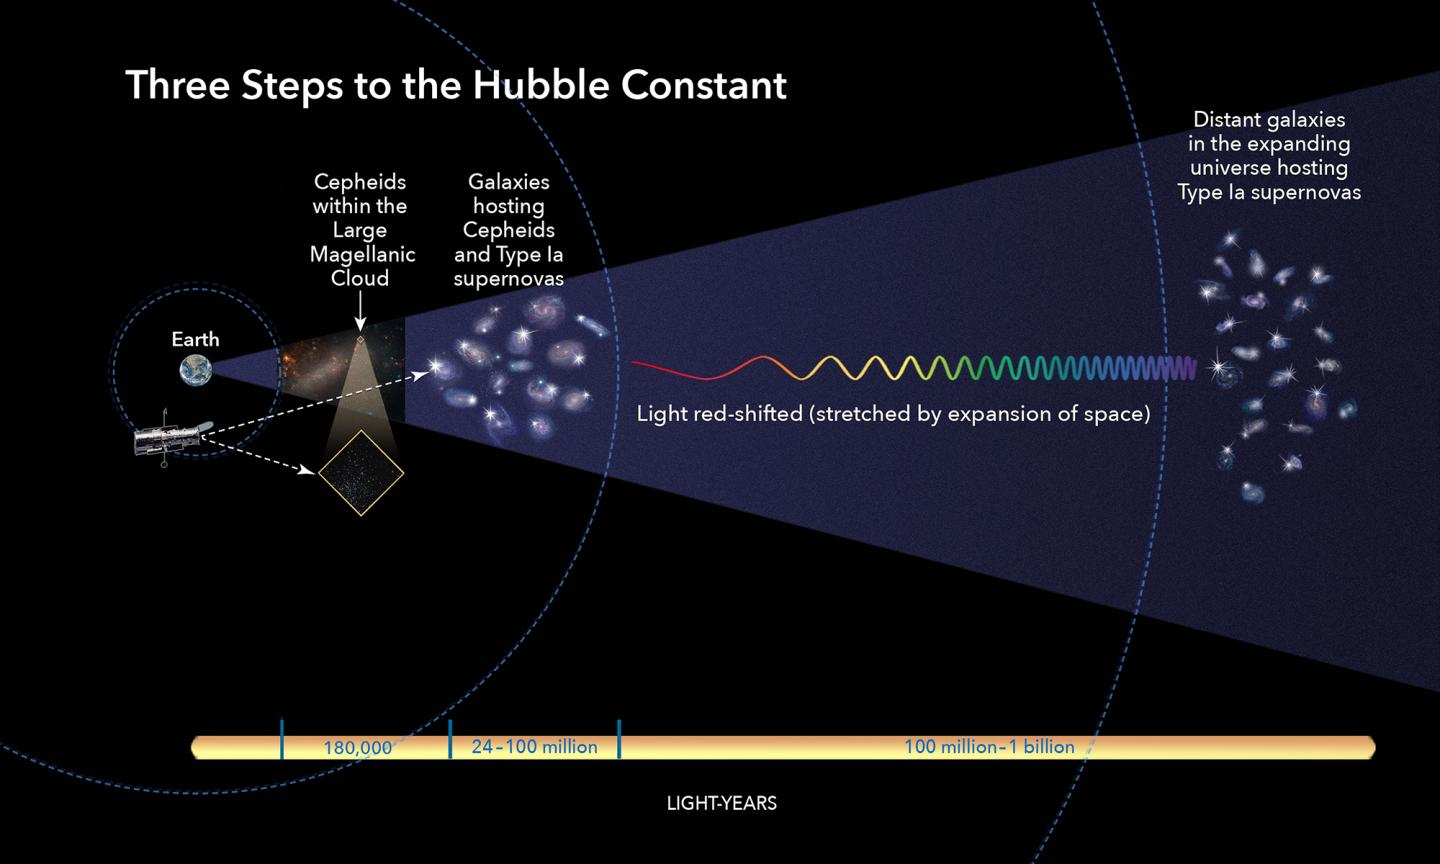 New Hubble measurements confirm universe is expanding faster than thought. The Johns Hopkins University.